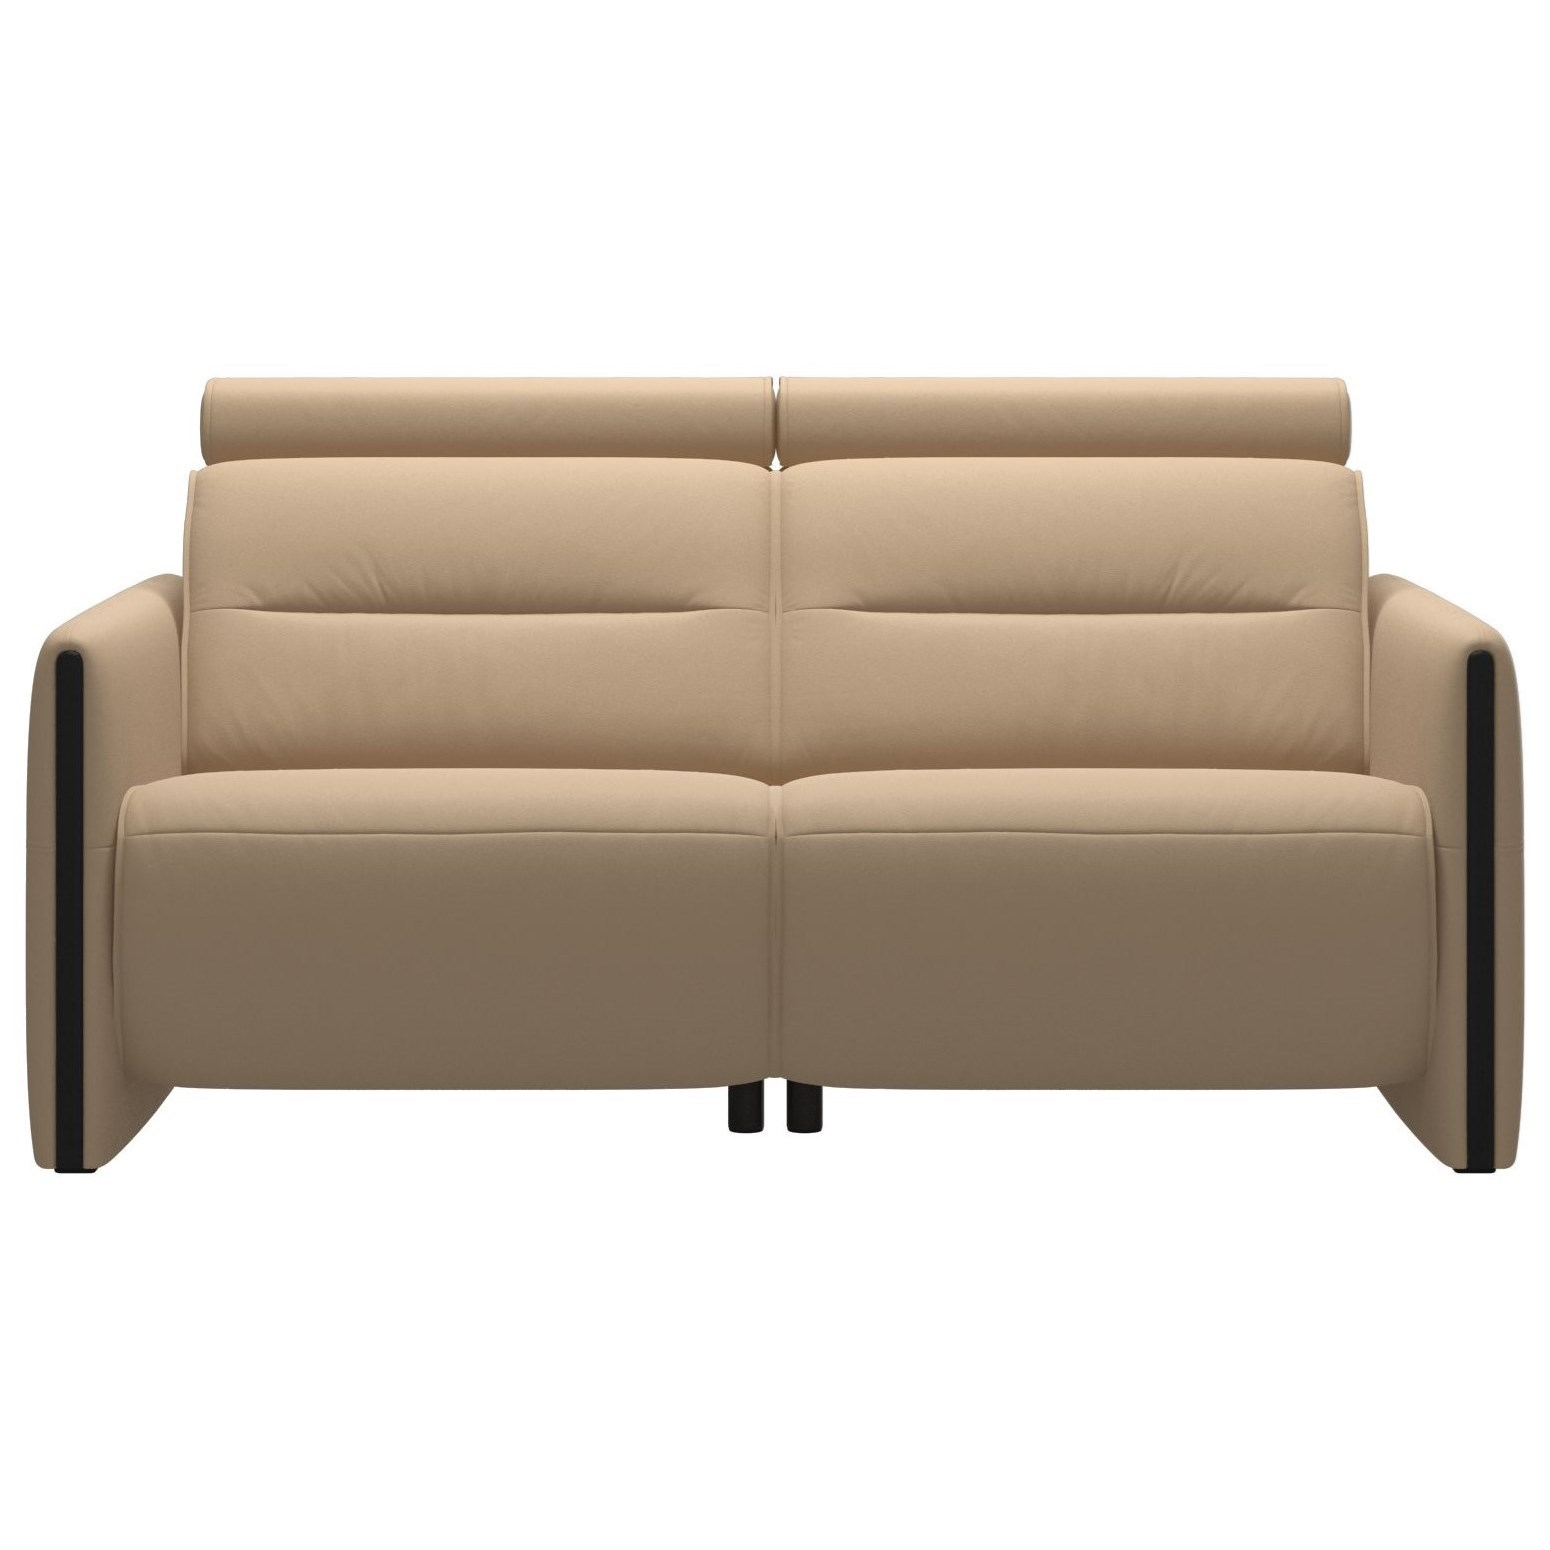 Emily Power 2-Seat Sofa with Wood Arms by Stressless at Bennett's Furniture and Mattresses